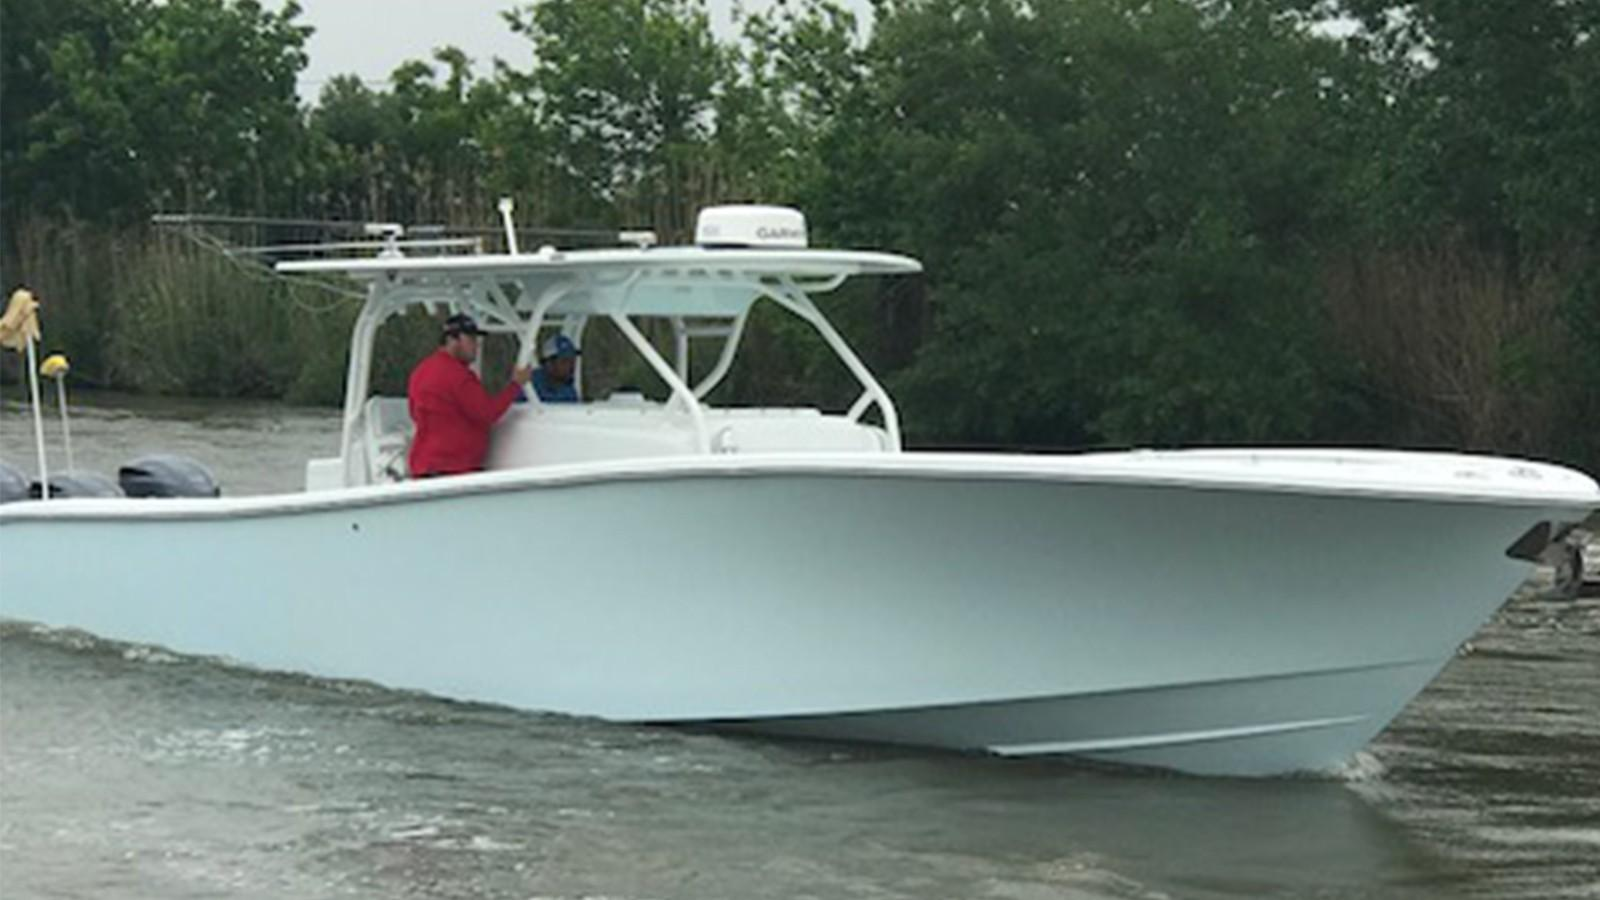 42' Yellowfin 2016